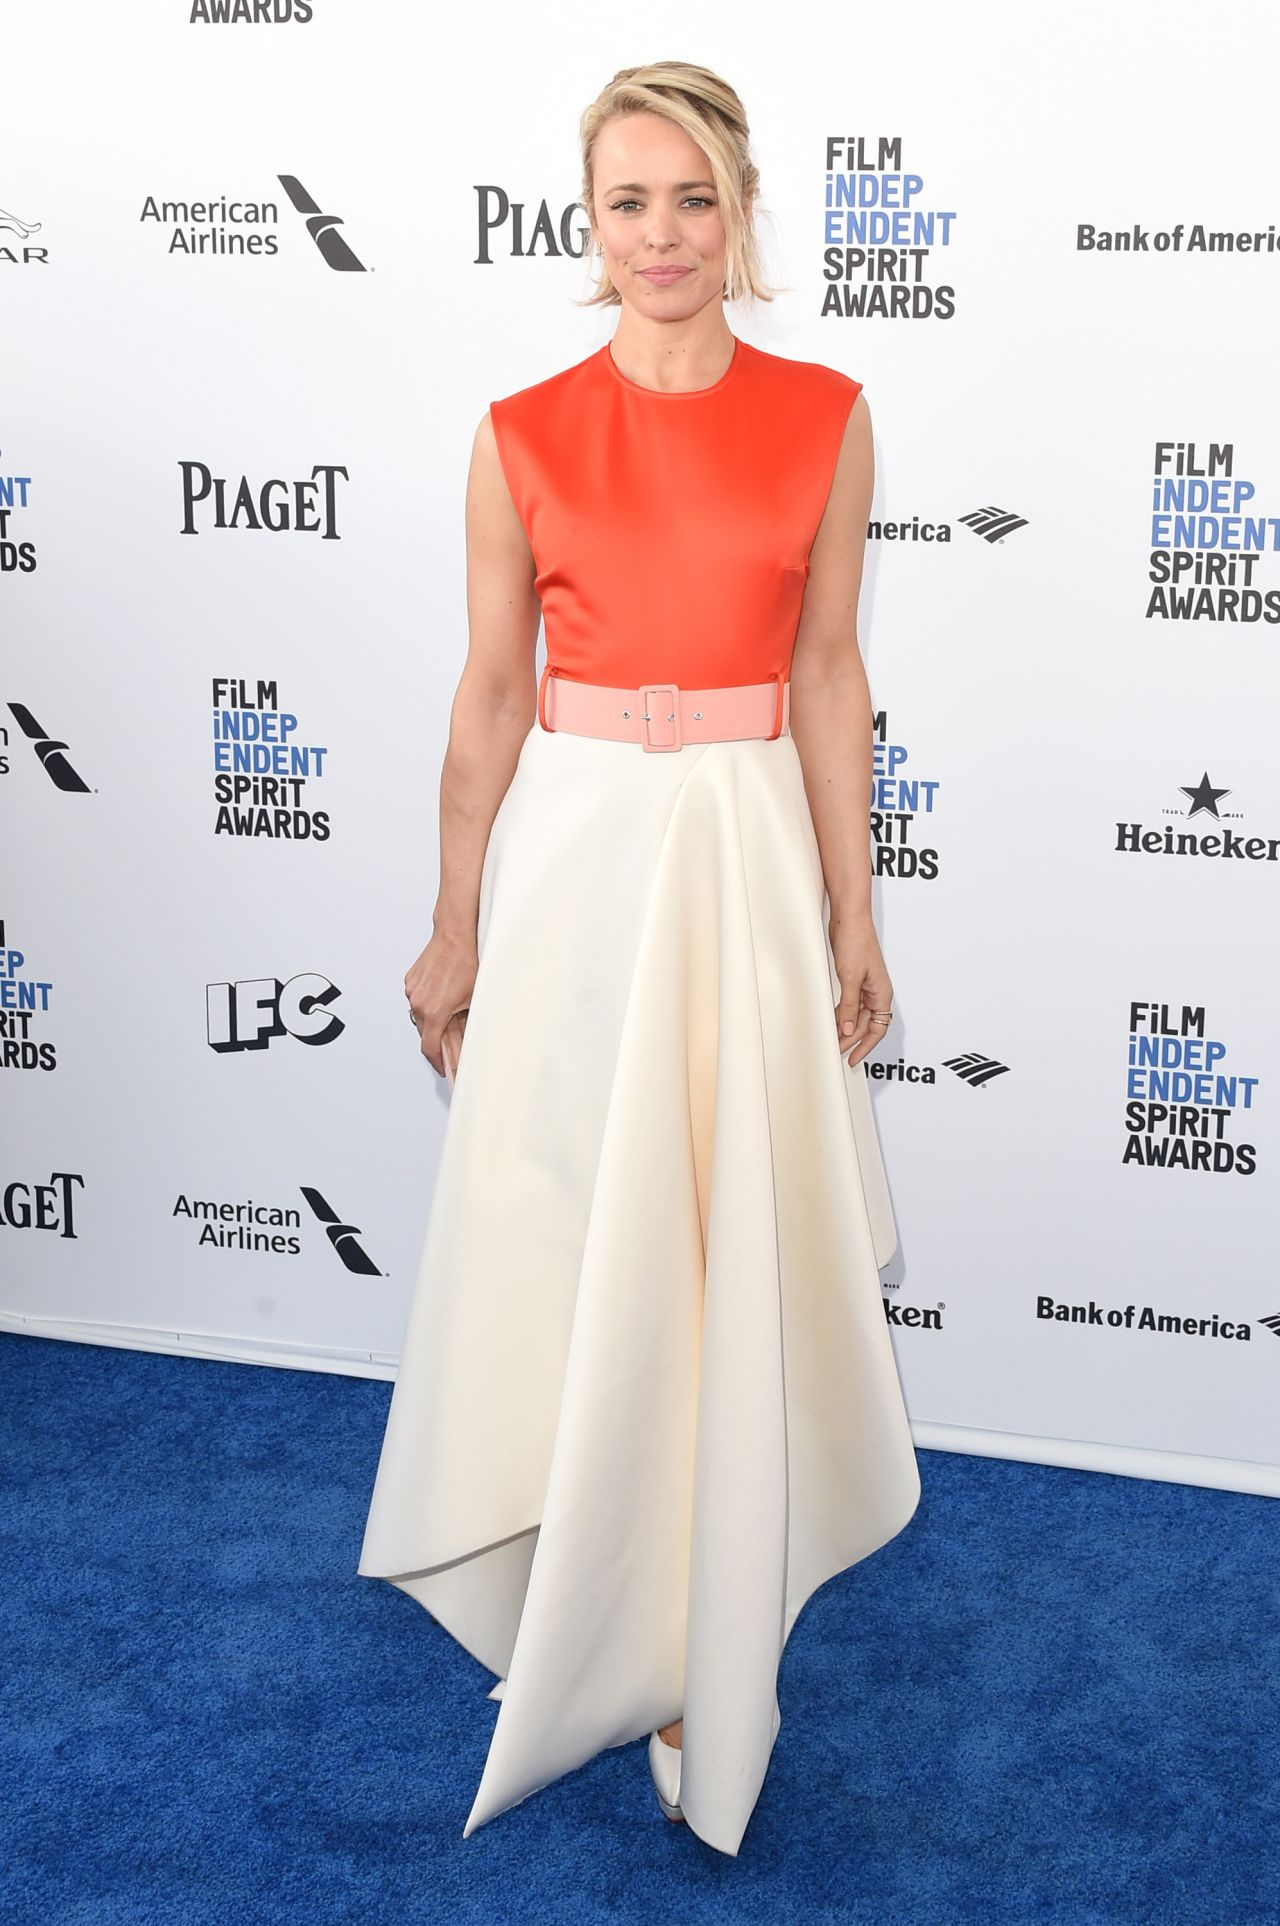 rachel-mcadams-2016-film-independent-spirit-awards-in-santa-monica-ca-4